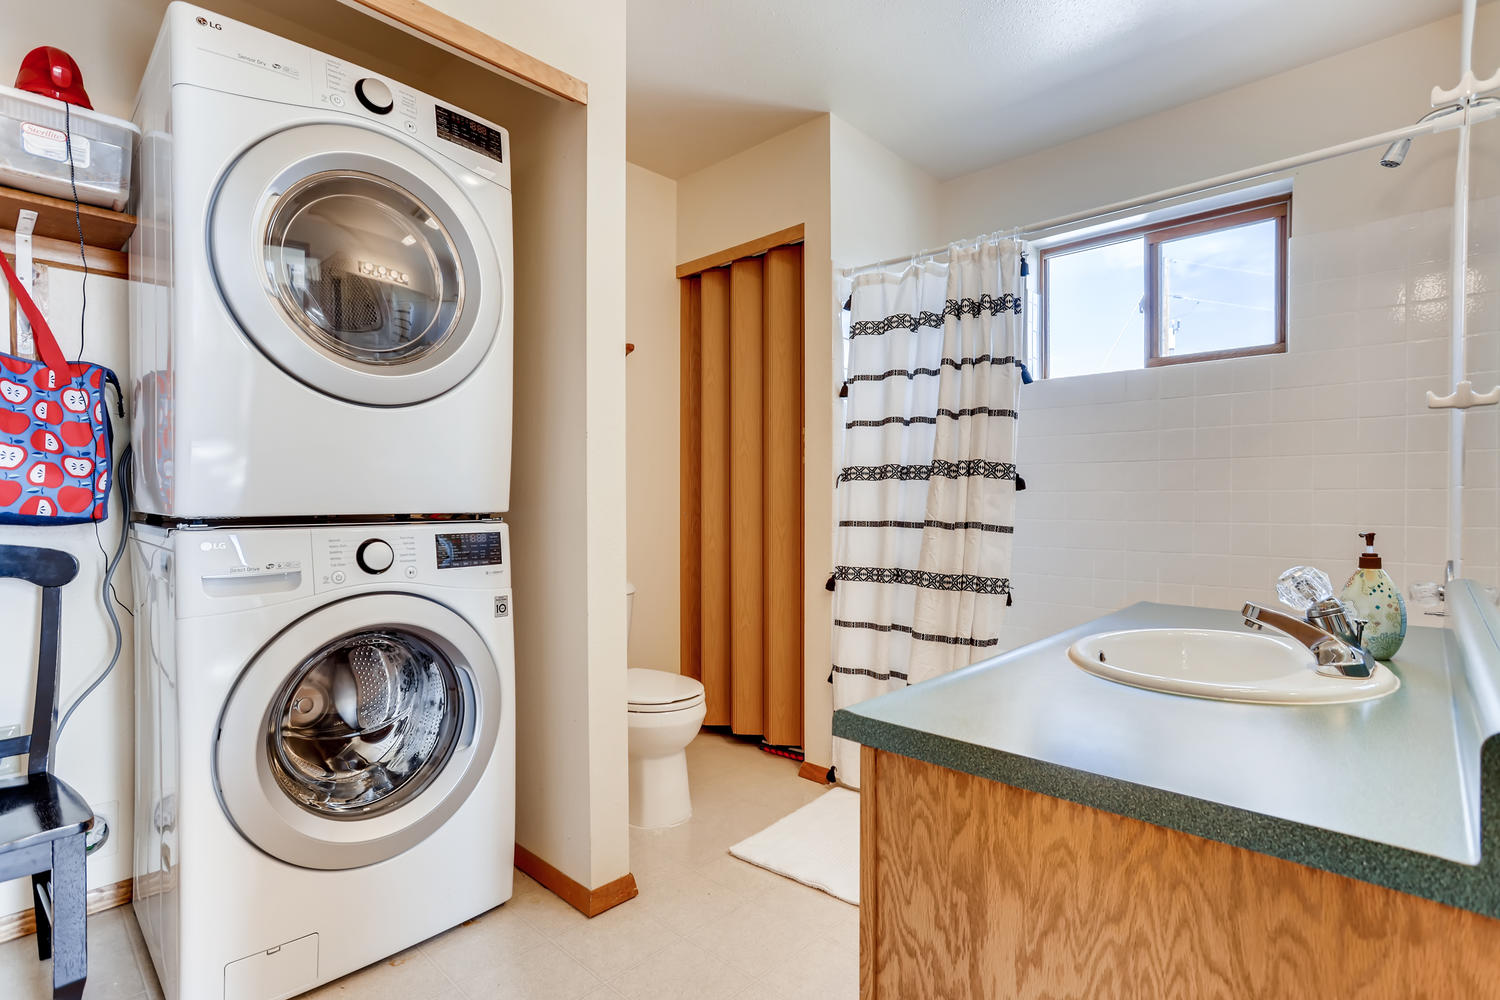 The bathroom has new washer and dryer along with a shower/tub combination.